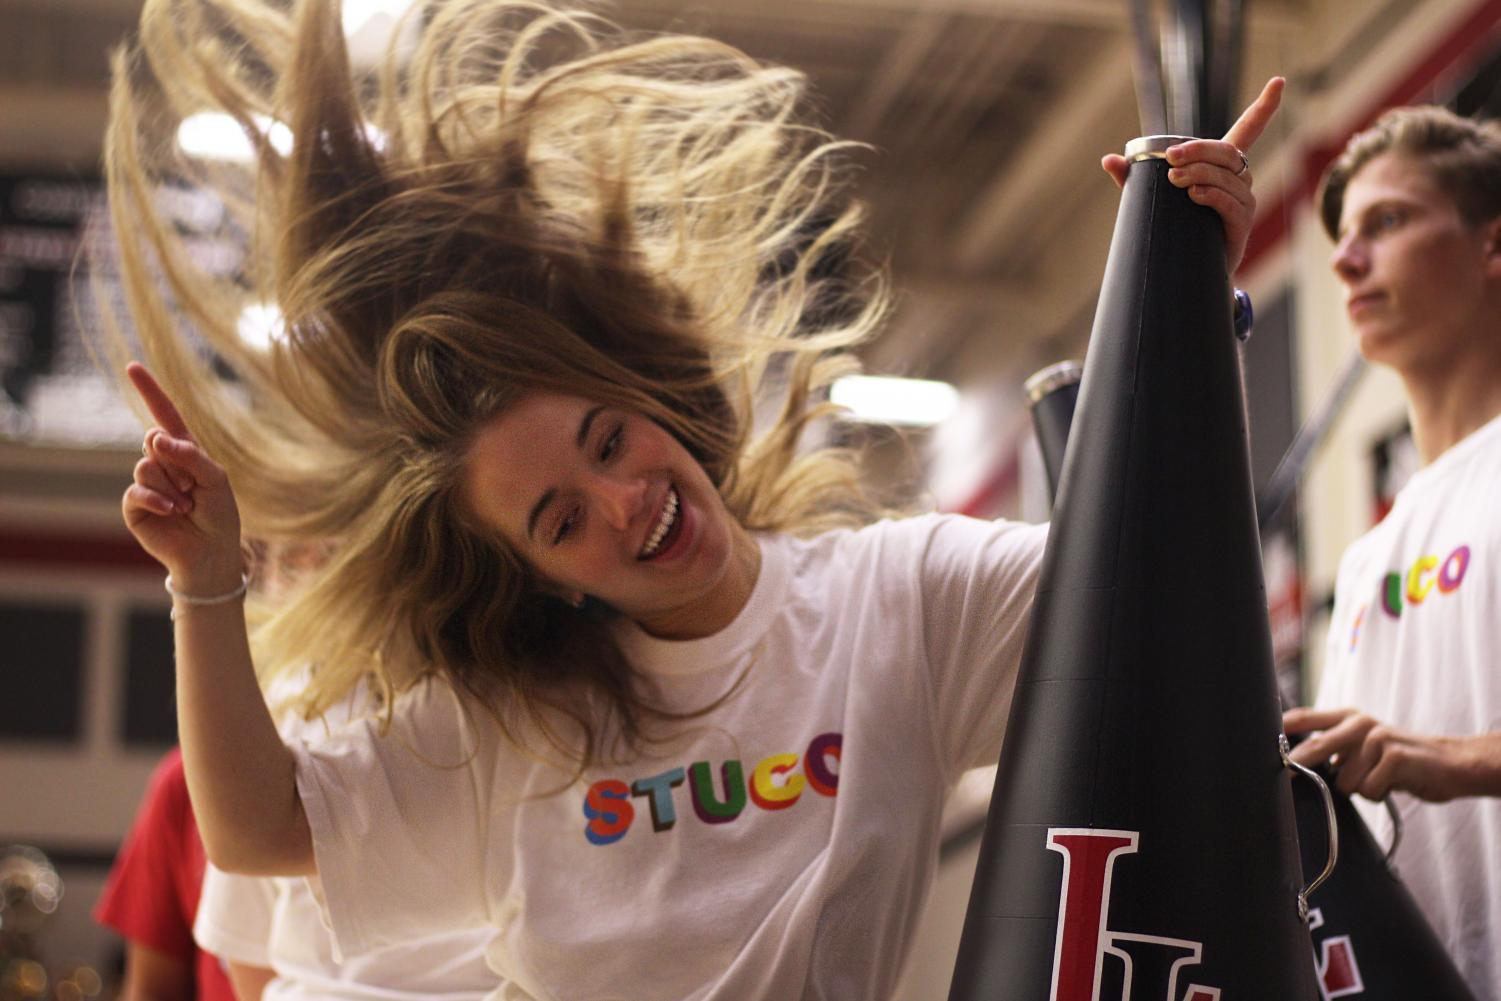 Senior+Student+Council+member+Halle+Meyer+dances+to+the+fight+song+at+the+conclusion+of+the+Founder%27s+Day+pep+rally.+Founder%27s+Day+was+comprised+of+several+different+events+showcasing+the+various+organizations+the+incoming+students+could+join.+